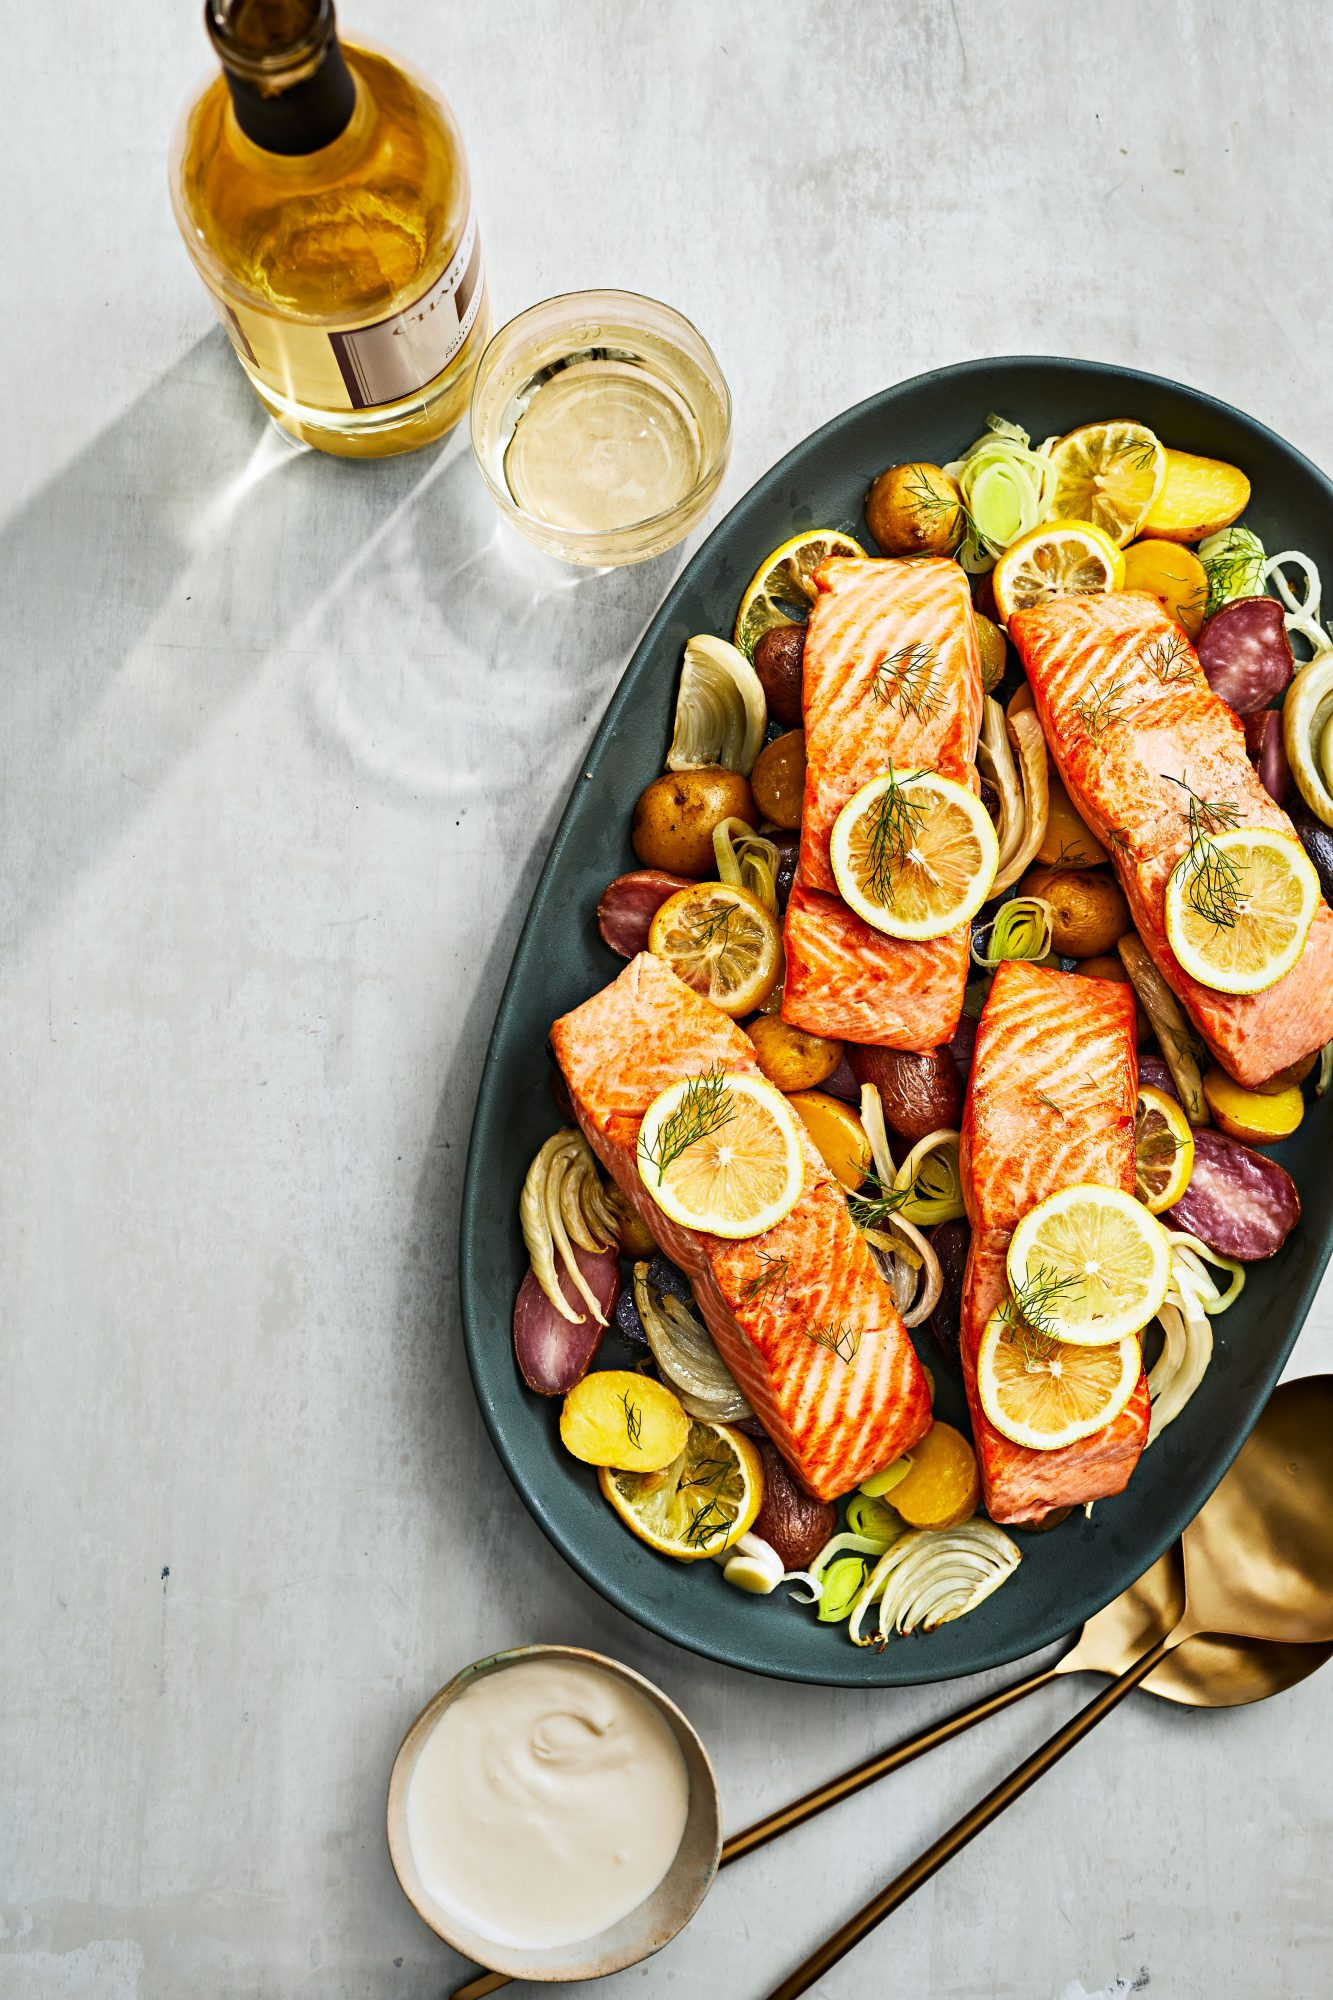 Lemony Slow-Cooked Salmon with Potatoes and Fennel